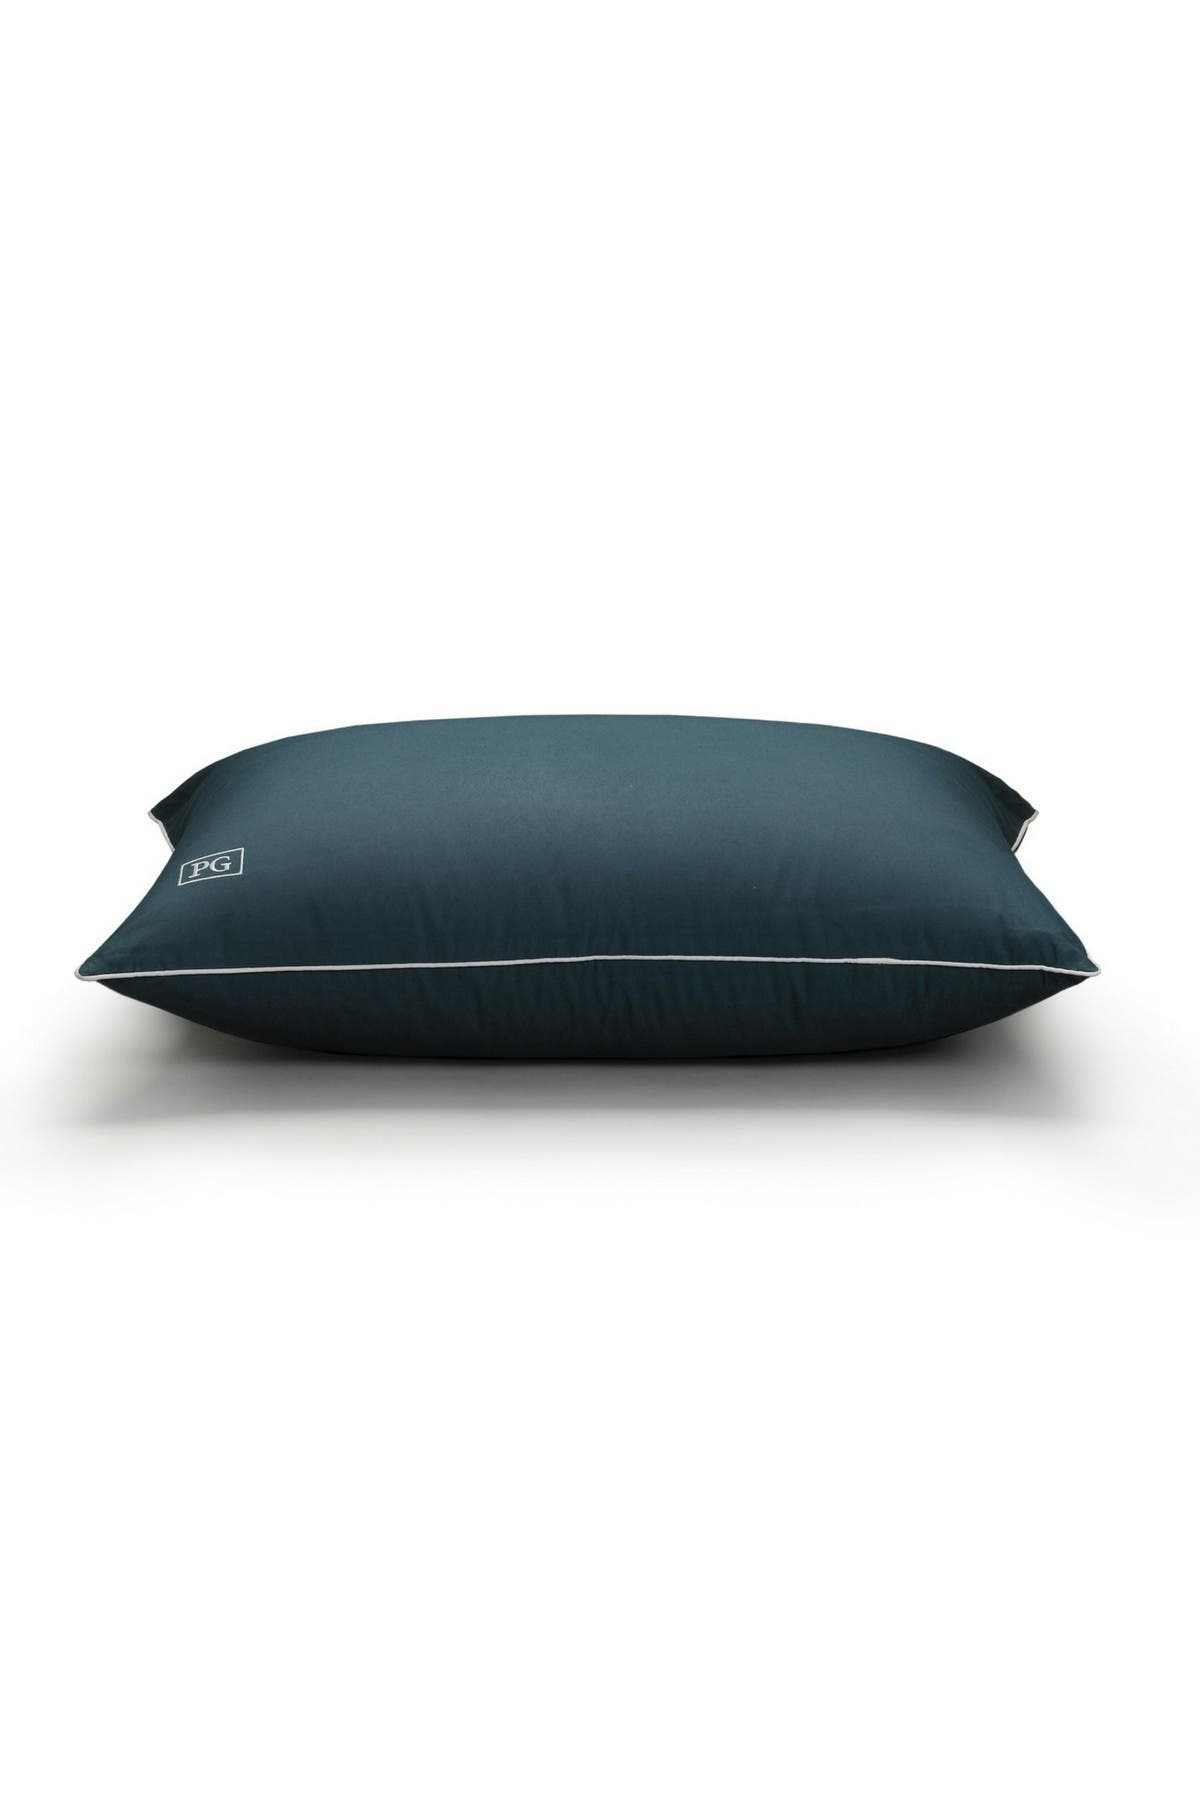 Image of Pillow Guy Standard/Queen Down Alternative Stomach Sleeper Soft Pillow with MicronOne Technology - Navy/White